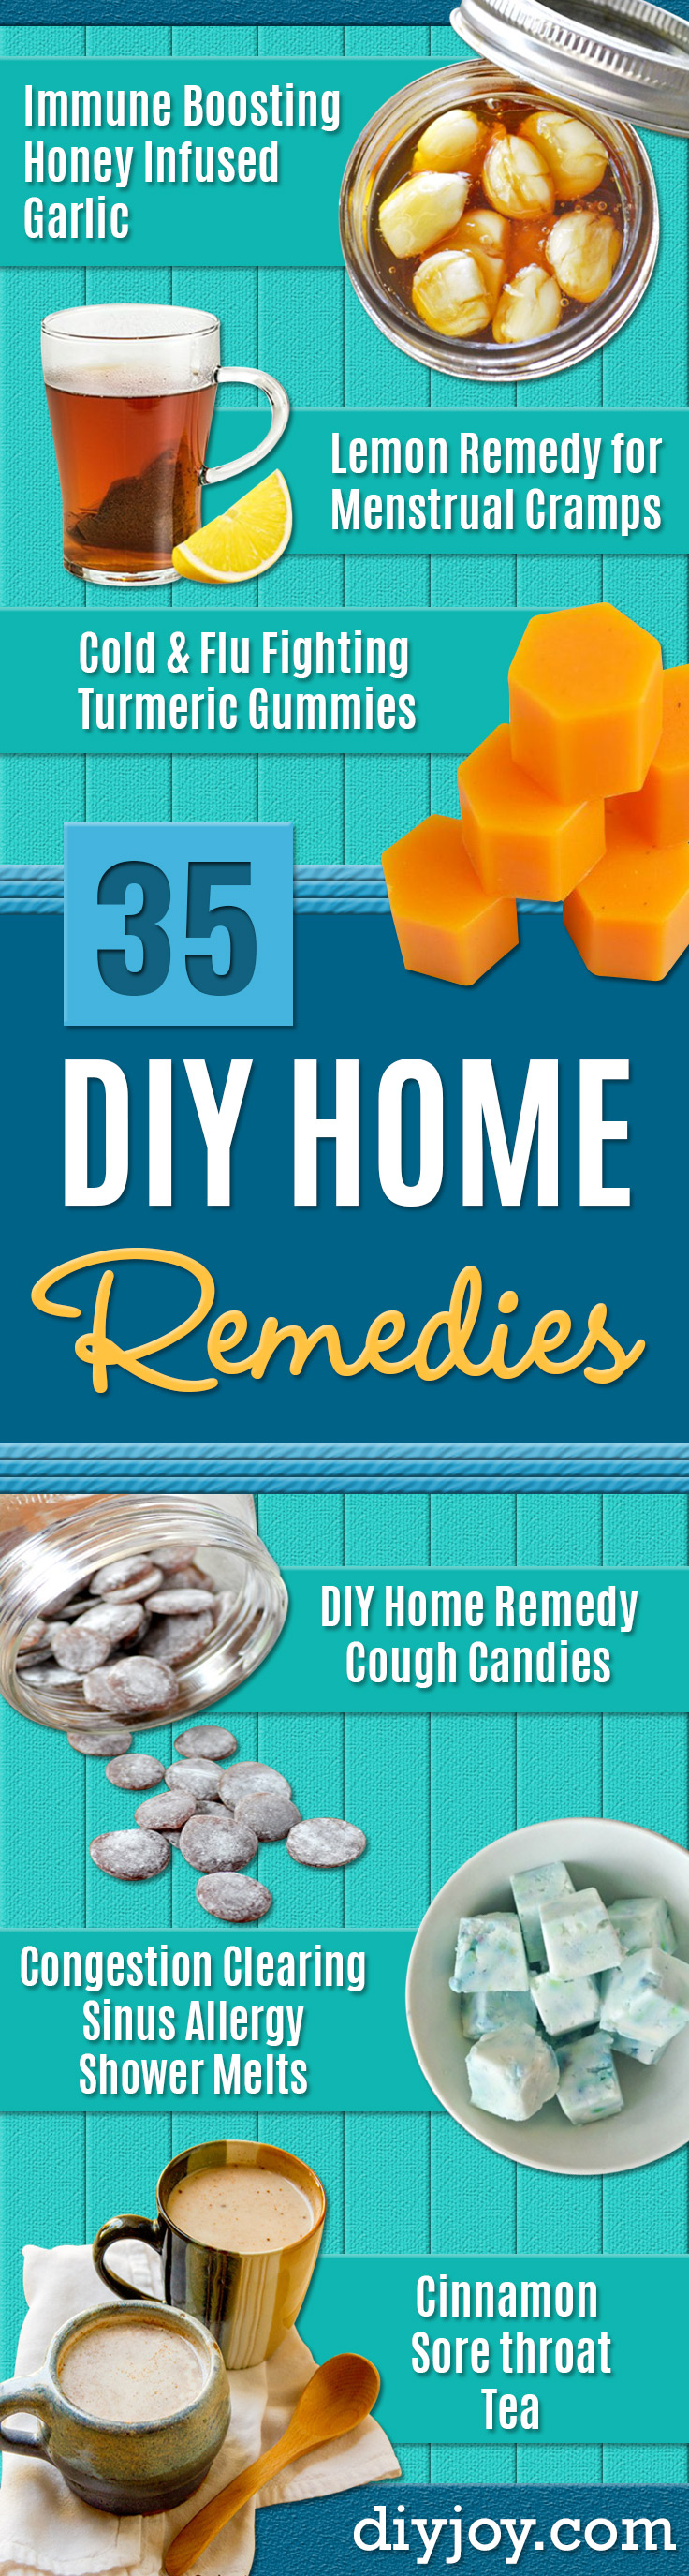 diy home remedies - Homemade Recipes home remedy and Ideas for Help Relieve Symptoms of Cold and Flu, Upset Stomach, Rash, Cough, Sore Throat, Headache and Illness - Skincare Products, Balms, Lotions and Teas - Homeopathic recipe ideas